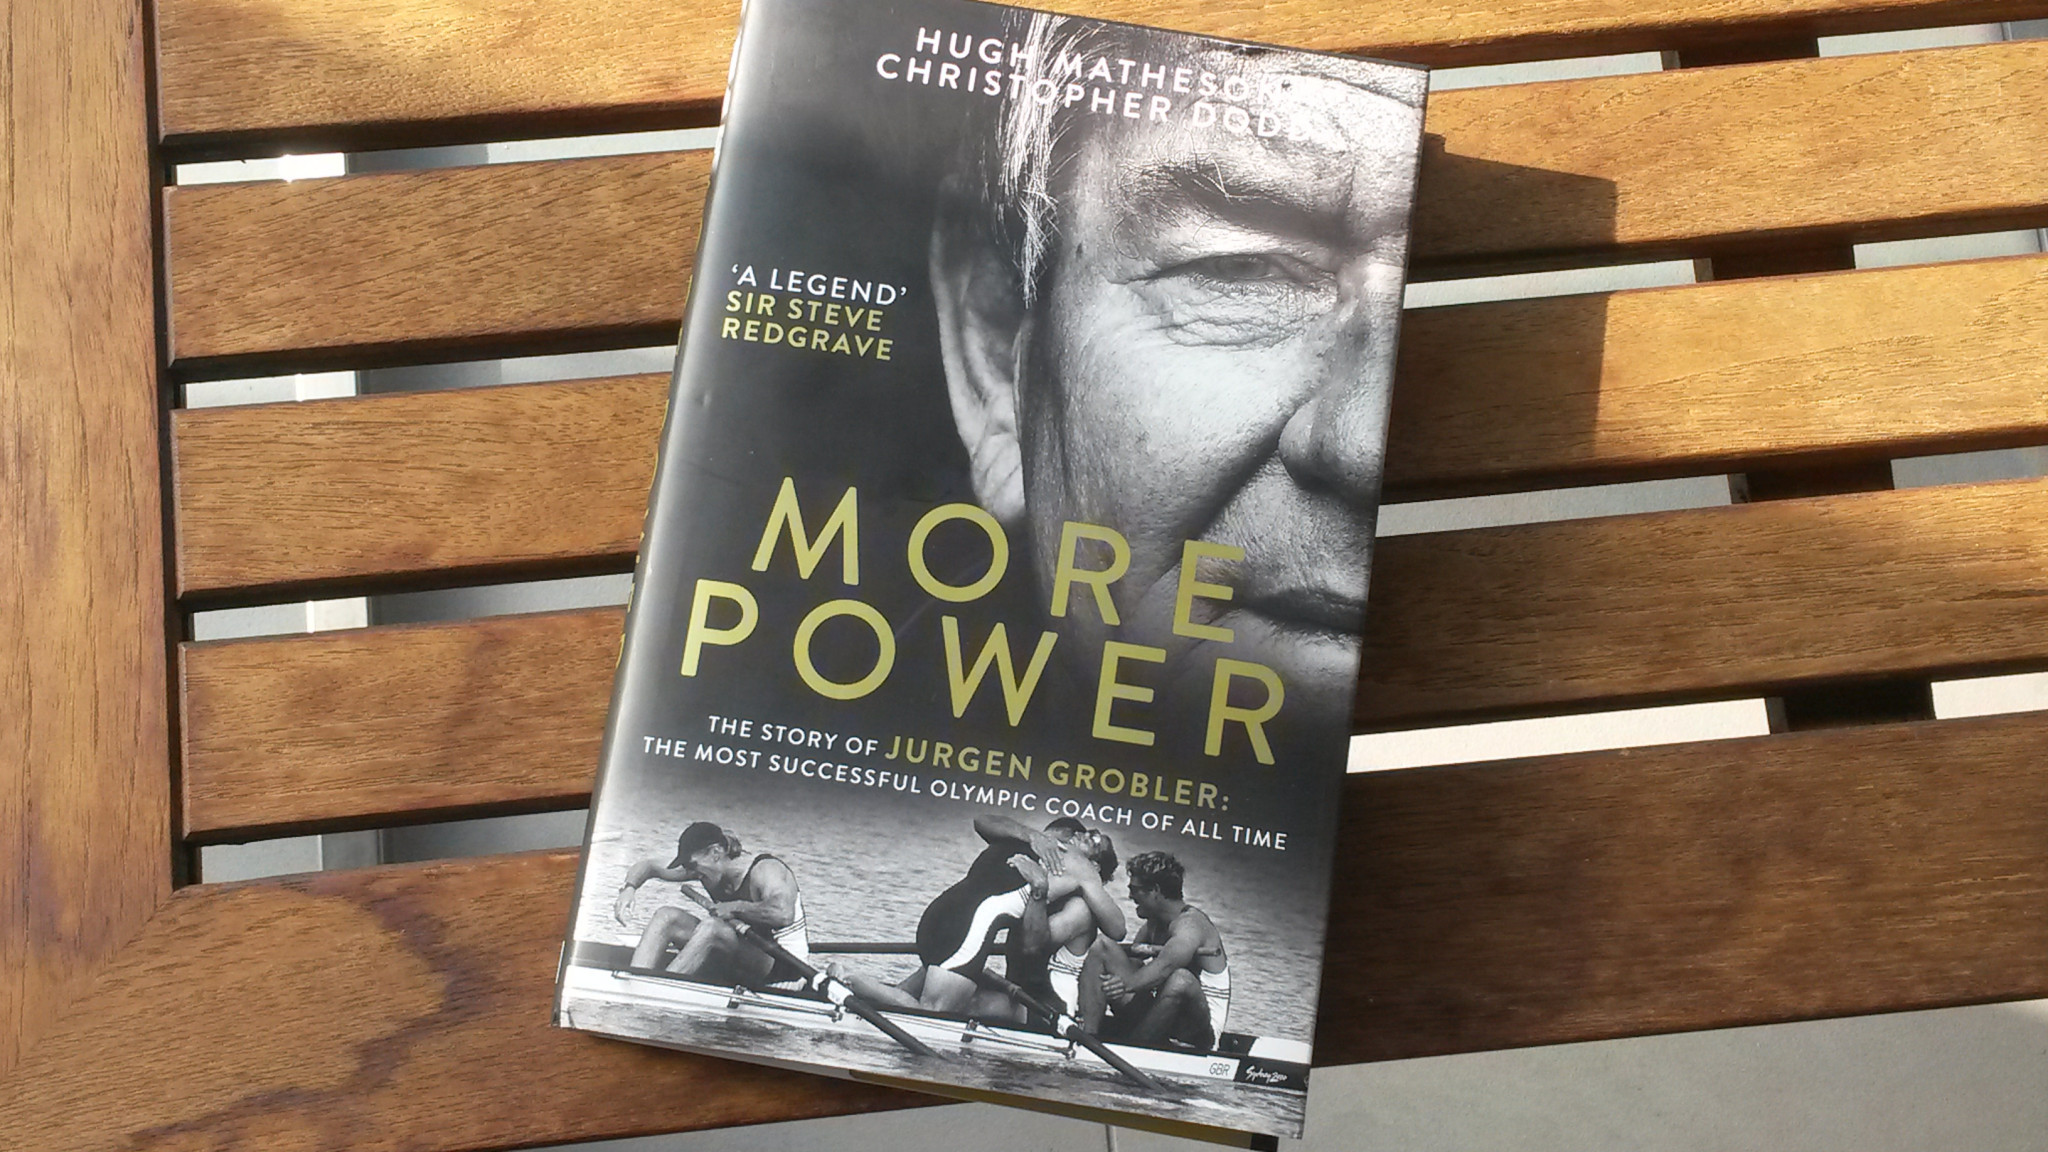 Former Olympic rower Hugh Matheson and journalist and sport historian Chris Dodd have produced a hugely knowledgeable new account of Grobler's life in sport, from his years within the East German system to his second challenge within British rowing ©ITG